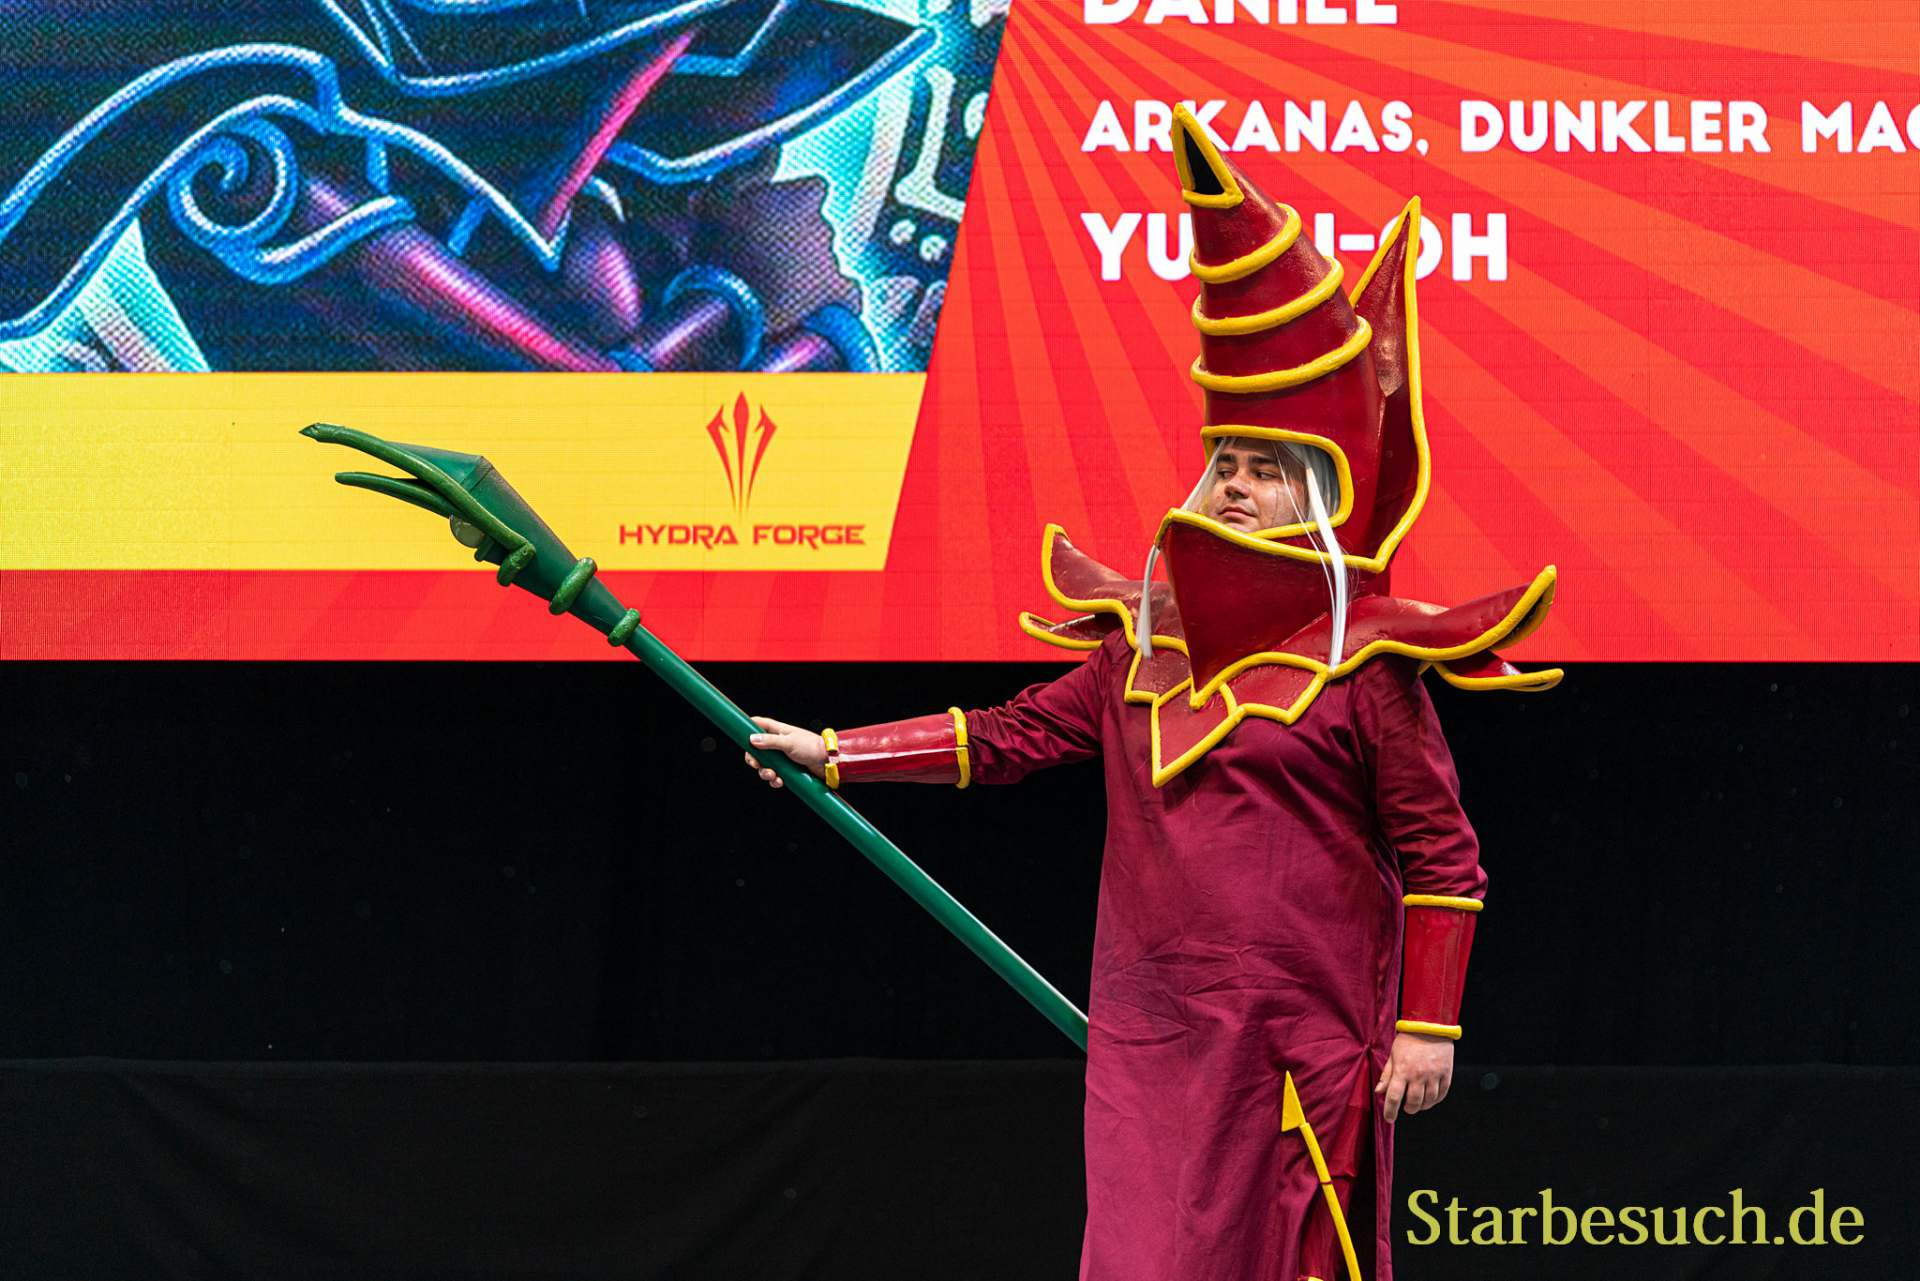 Cosplay Contest #24: Daniel as Arkansas, Dunkler Magier from Yu-Gi-Oh